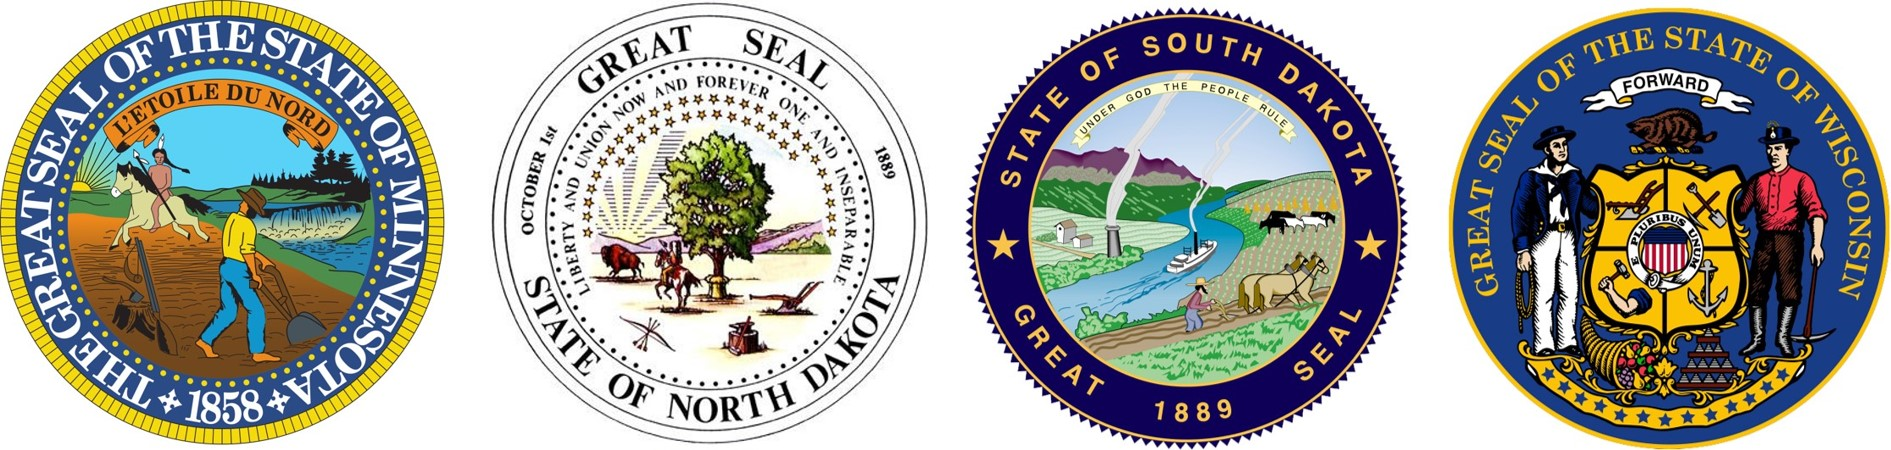 St. Paul Field Division State Seals